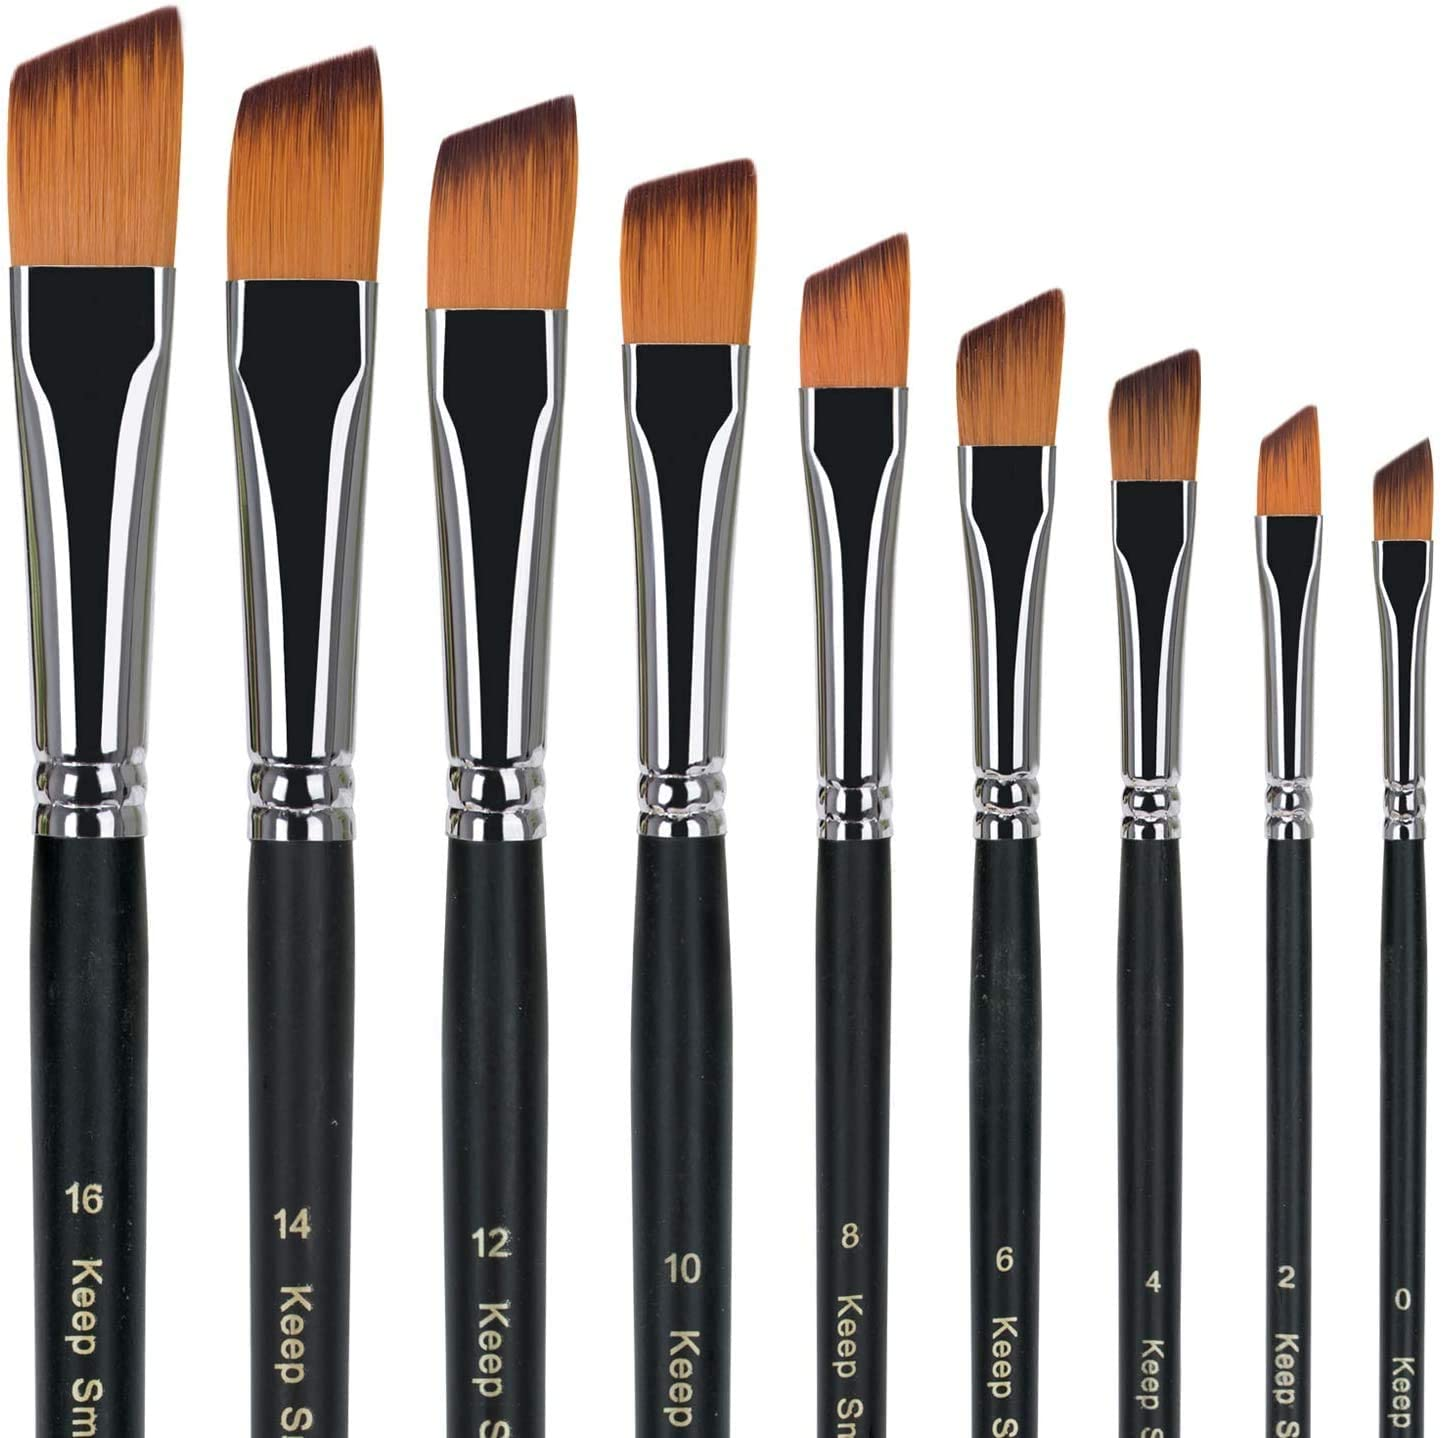 Angular Paint Brush, 9PC Oblique Tip Nylon Hair Angled Paint Brushes Set Art Artist Professional Painting Supplies for Acrylic, Watercolor, Gouache and Oil Painting (Golden Maple)